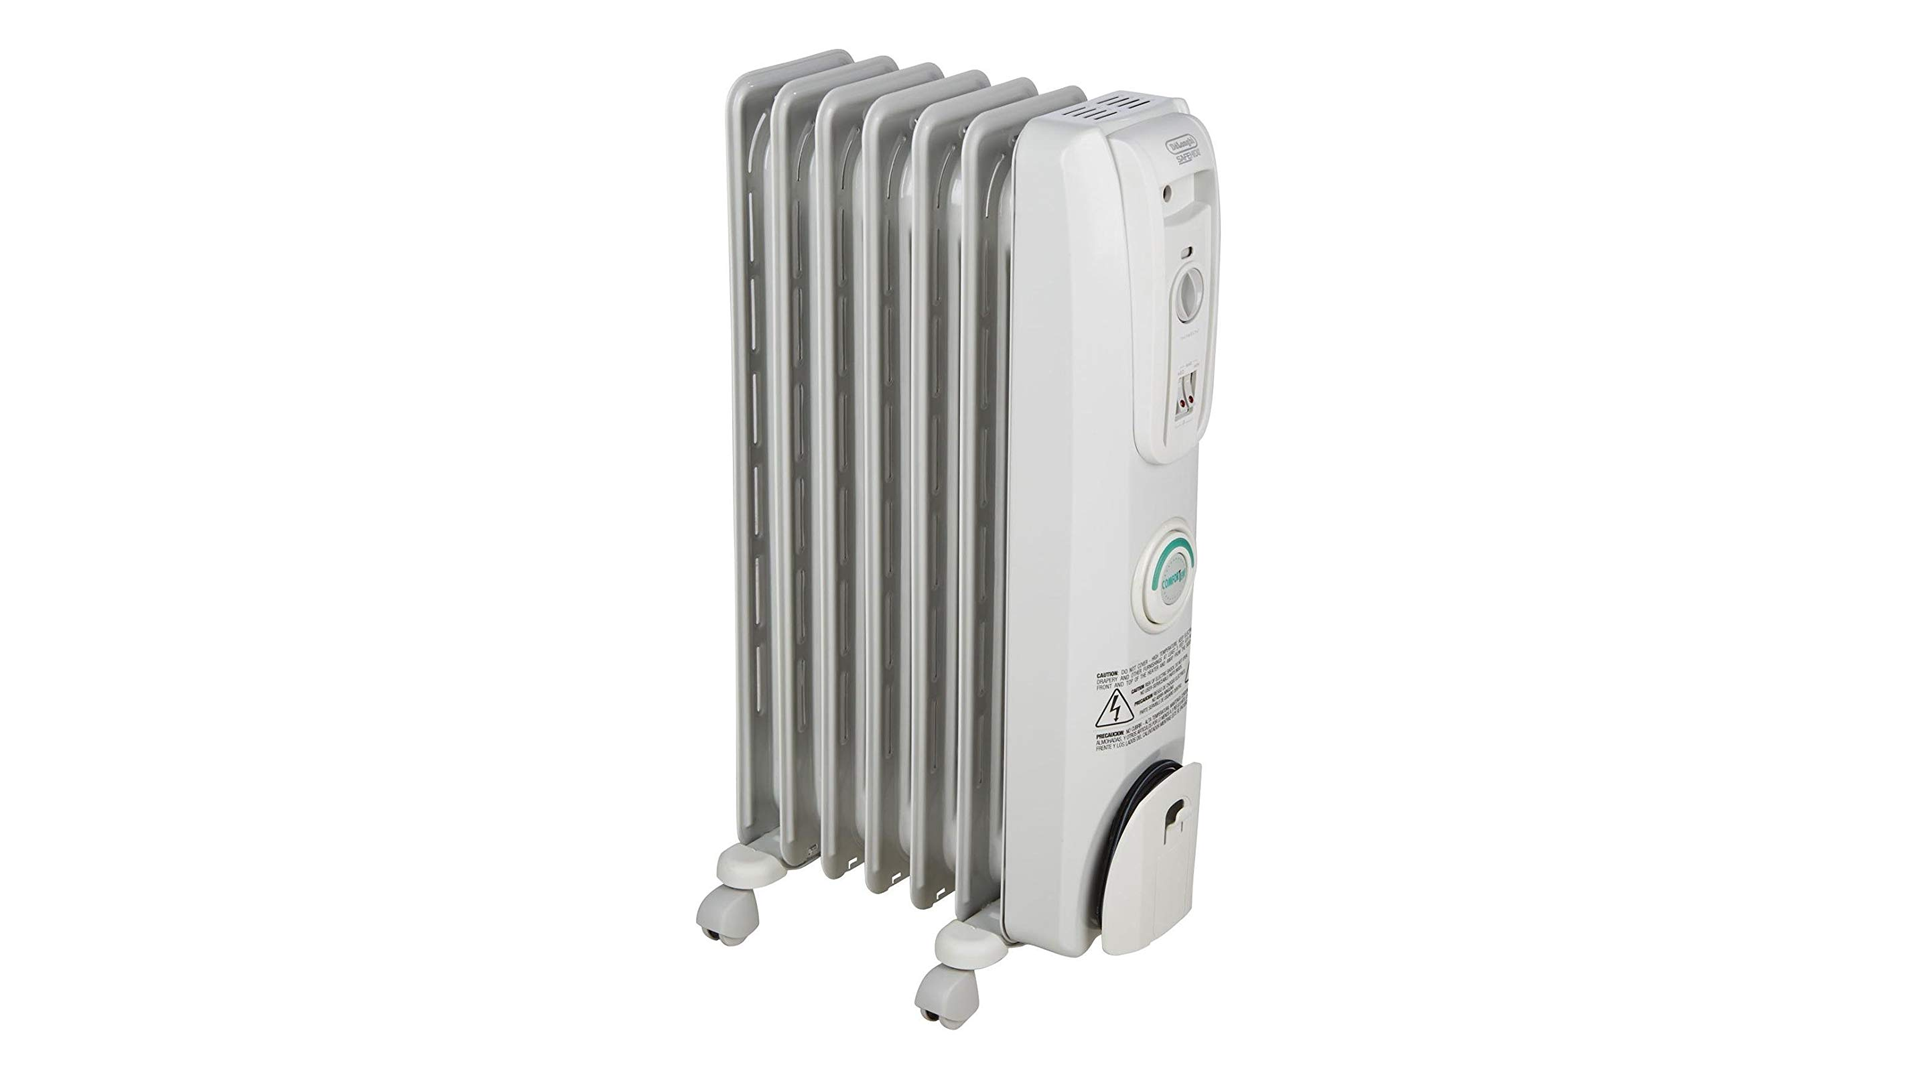 The DeLonghi EW7707CM Oil-Filled Radiator.